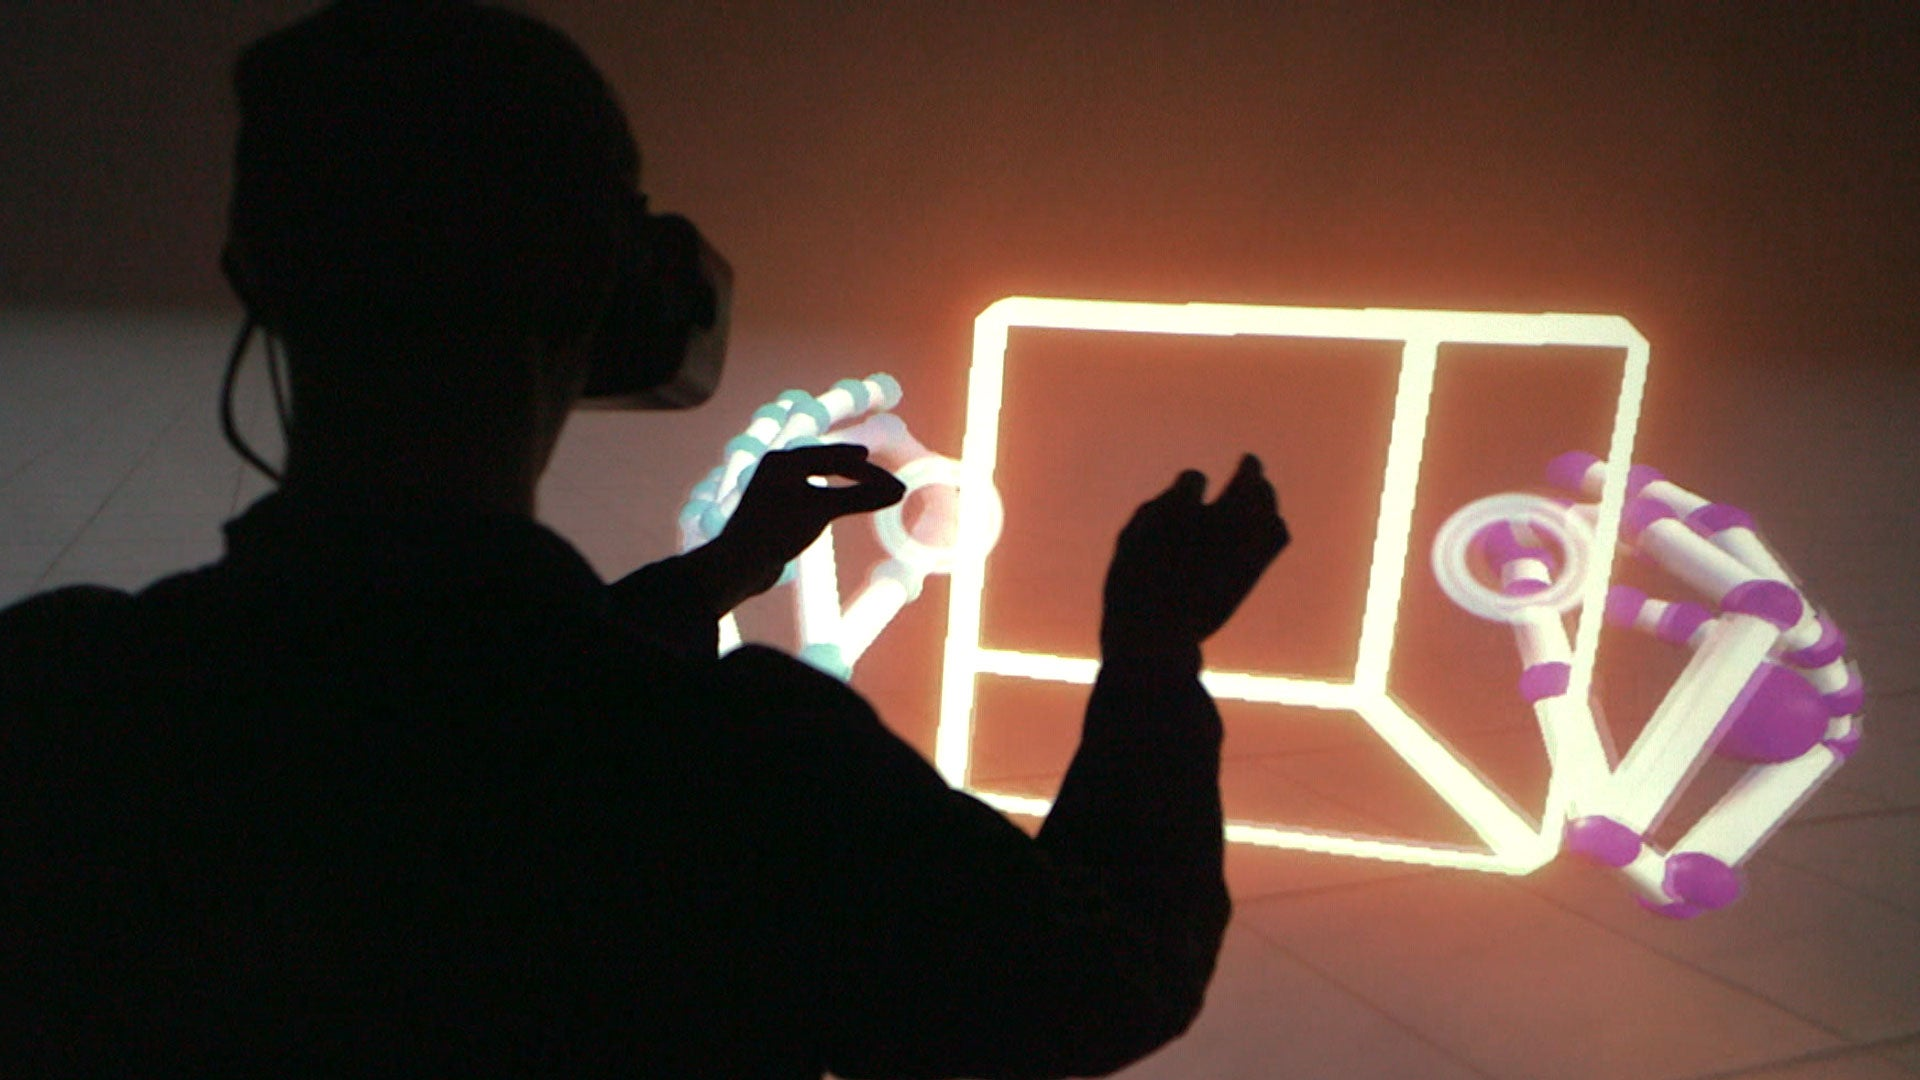 Mobile Finger Gestures Will Supercharge Virtual Reality